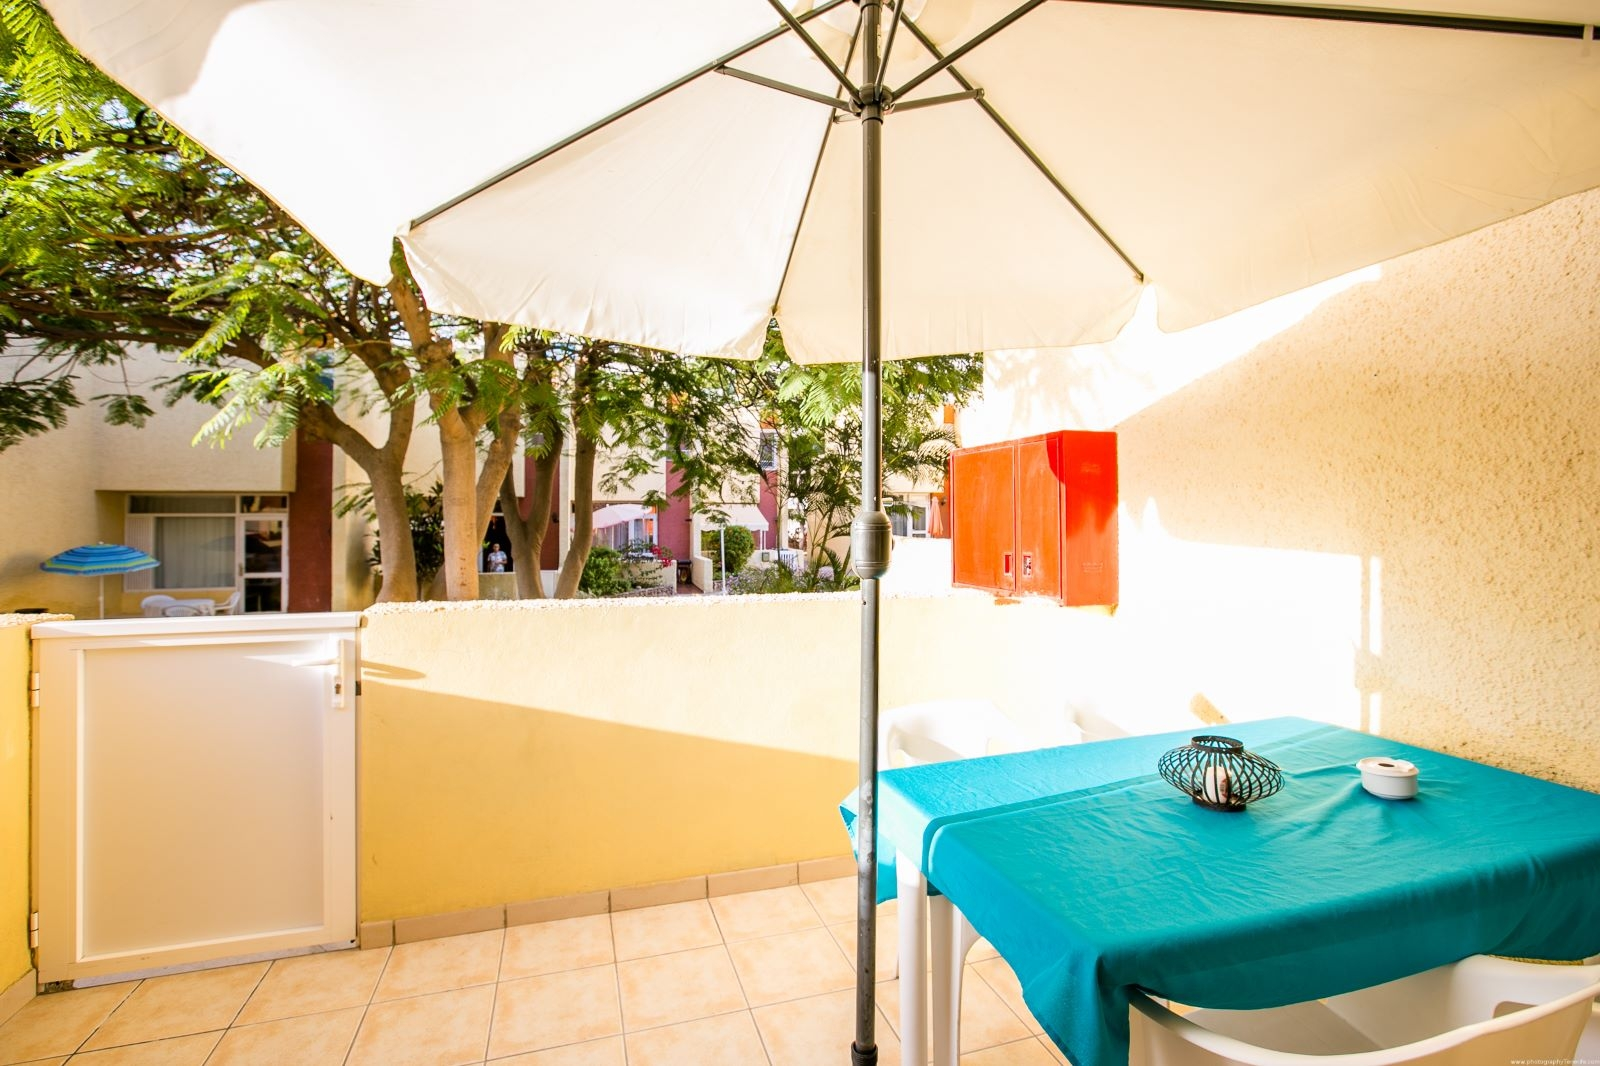 Properties for Sale in Tenerife, Canary Islands, Spain | SylkWayStar Real Estate. 1 bedroom apartment El Cortijo, Las Americas. Image-22489